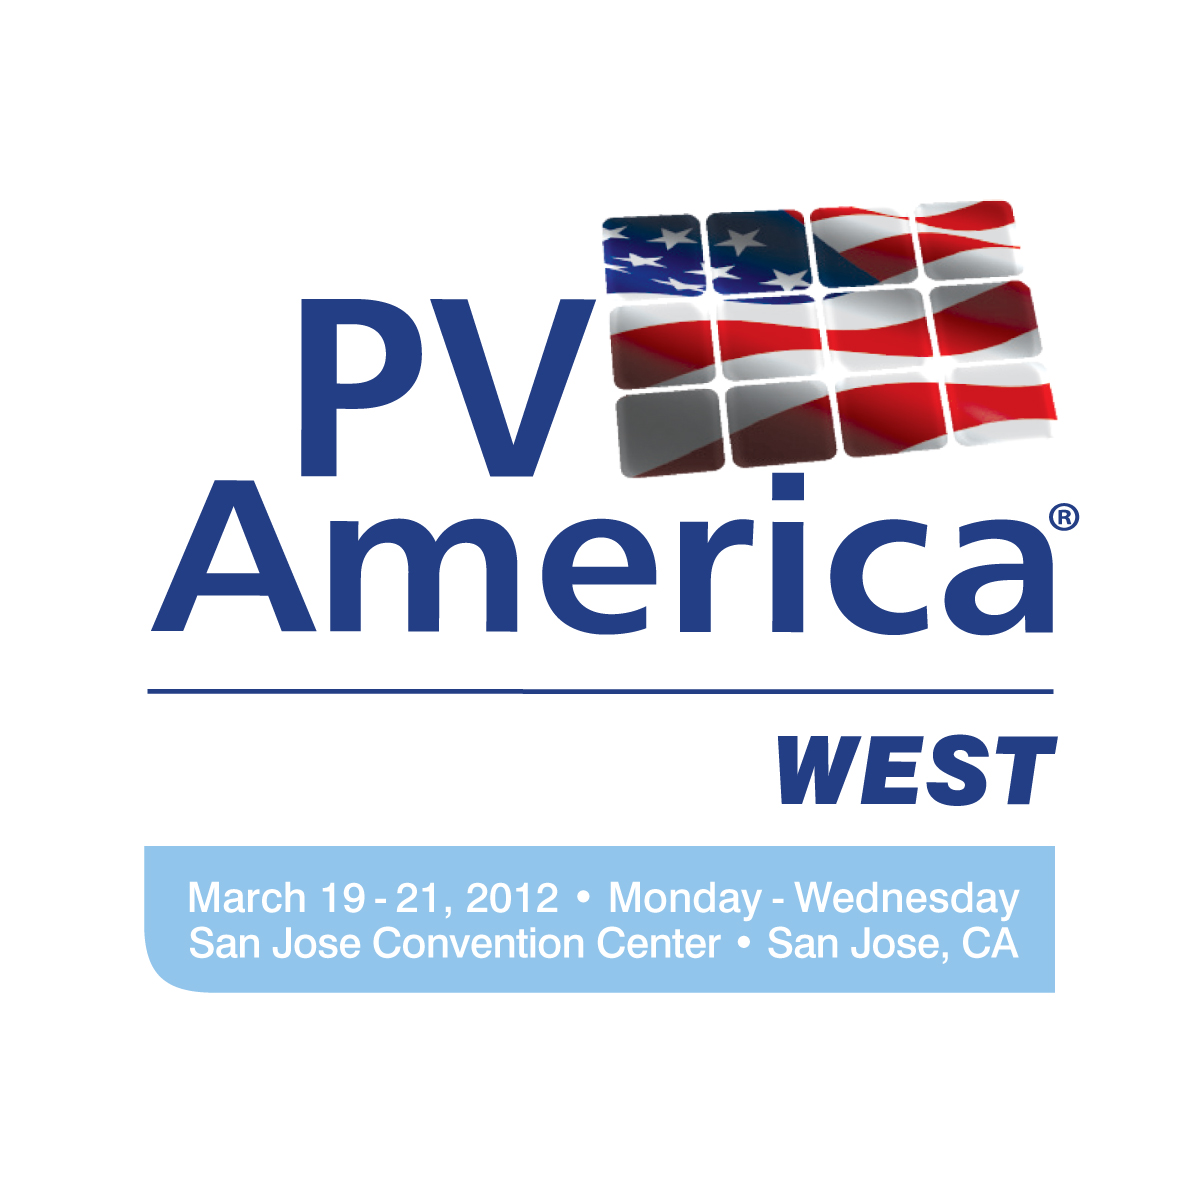 Inaugural PV America West Conference Celebrated Industry Growth